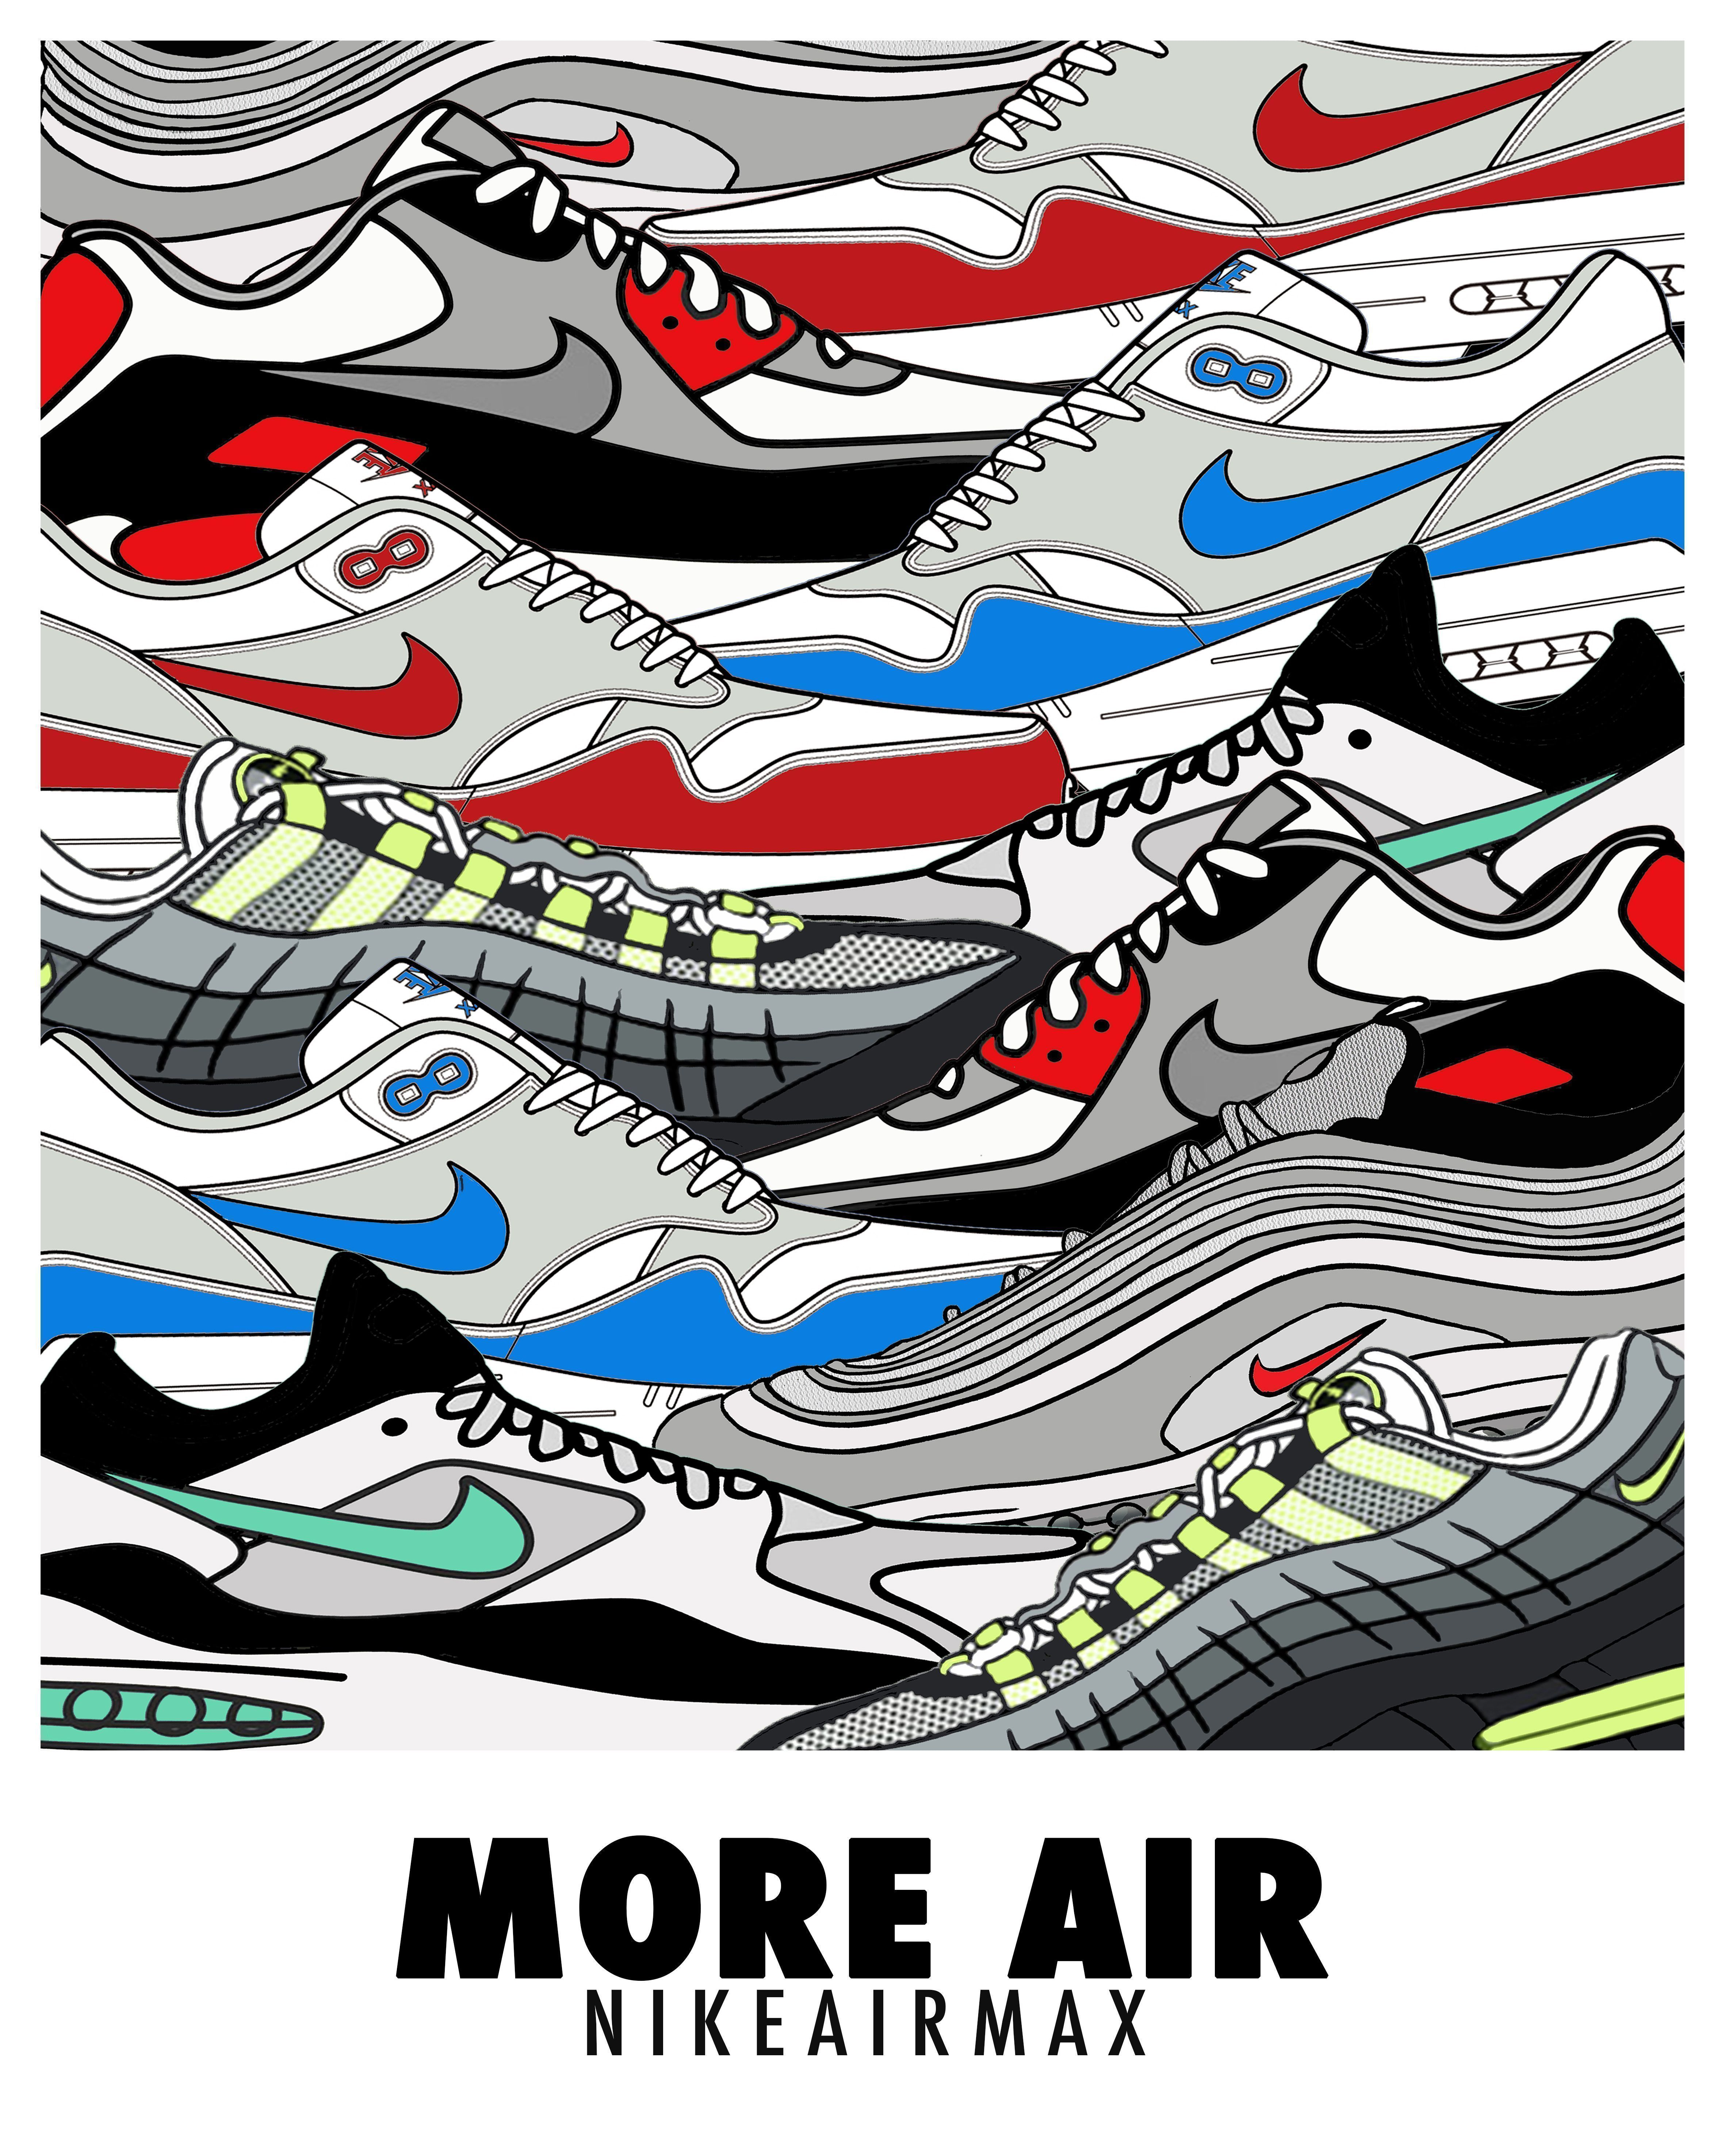 info for 21993 2e029 More Air Nike Air Max Print with all the original colourways ...